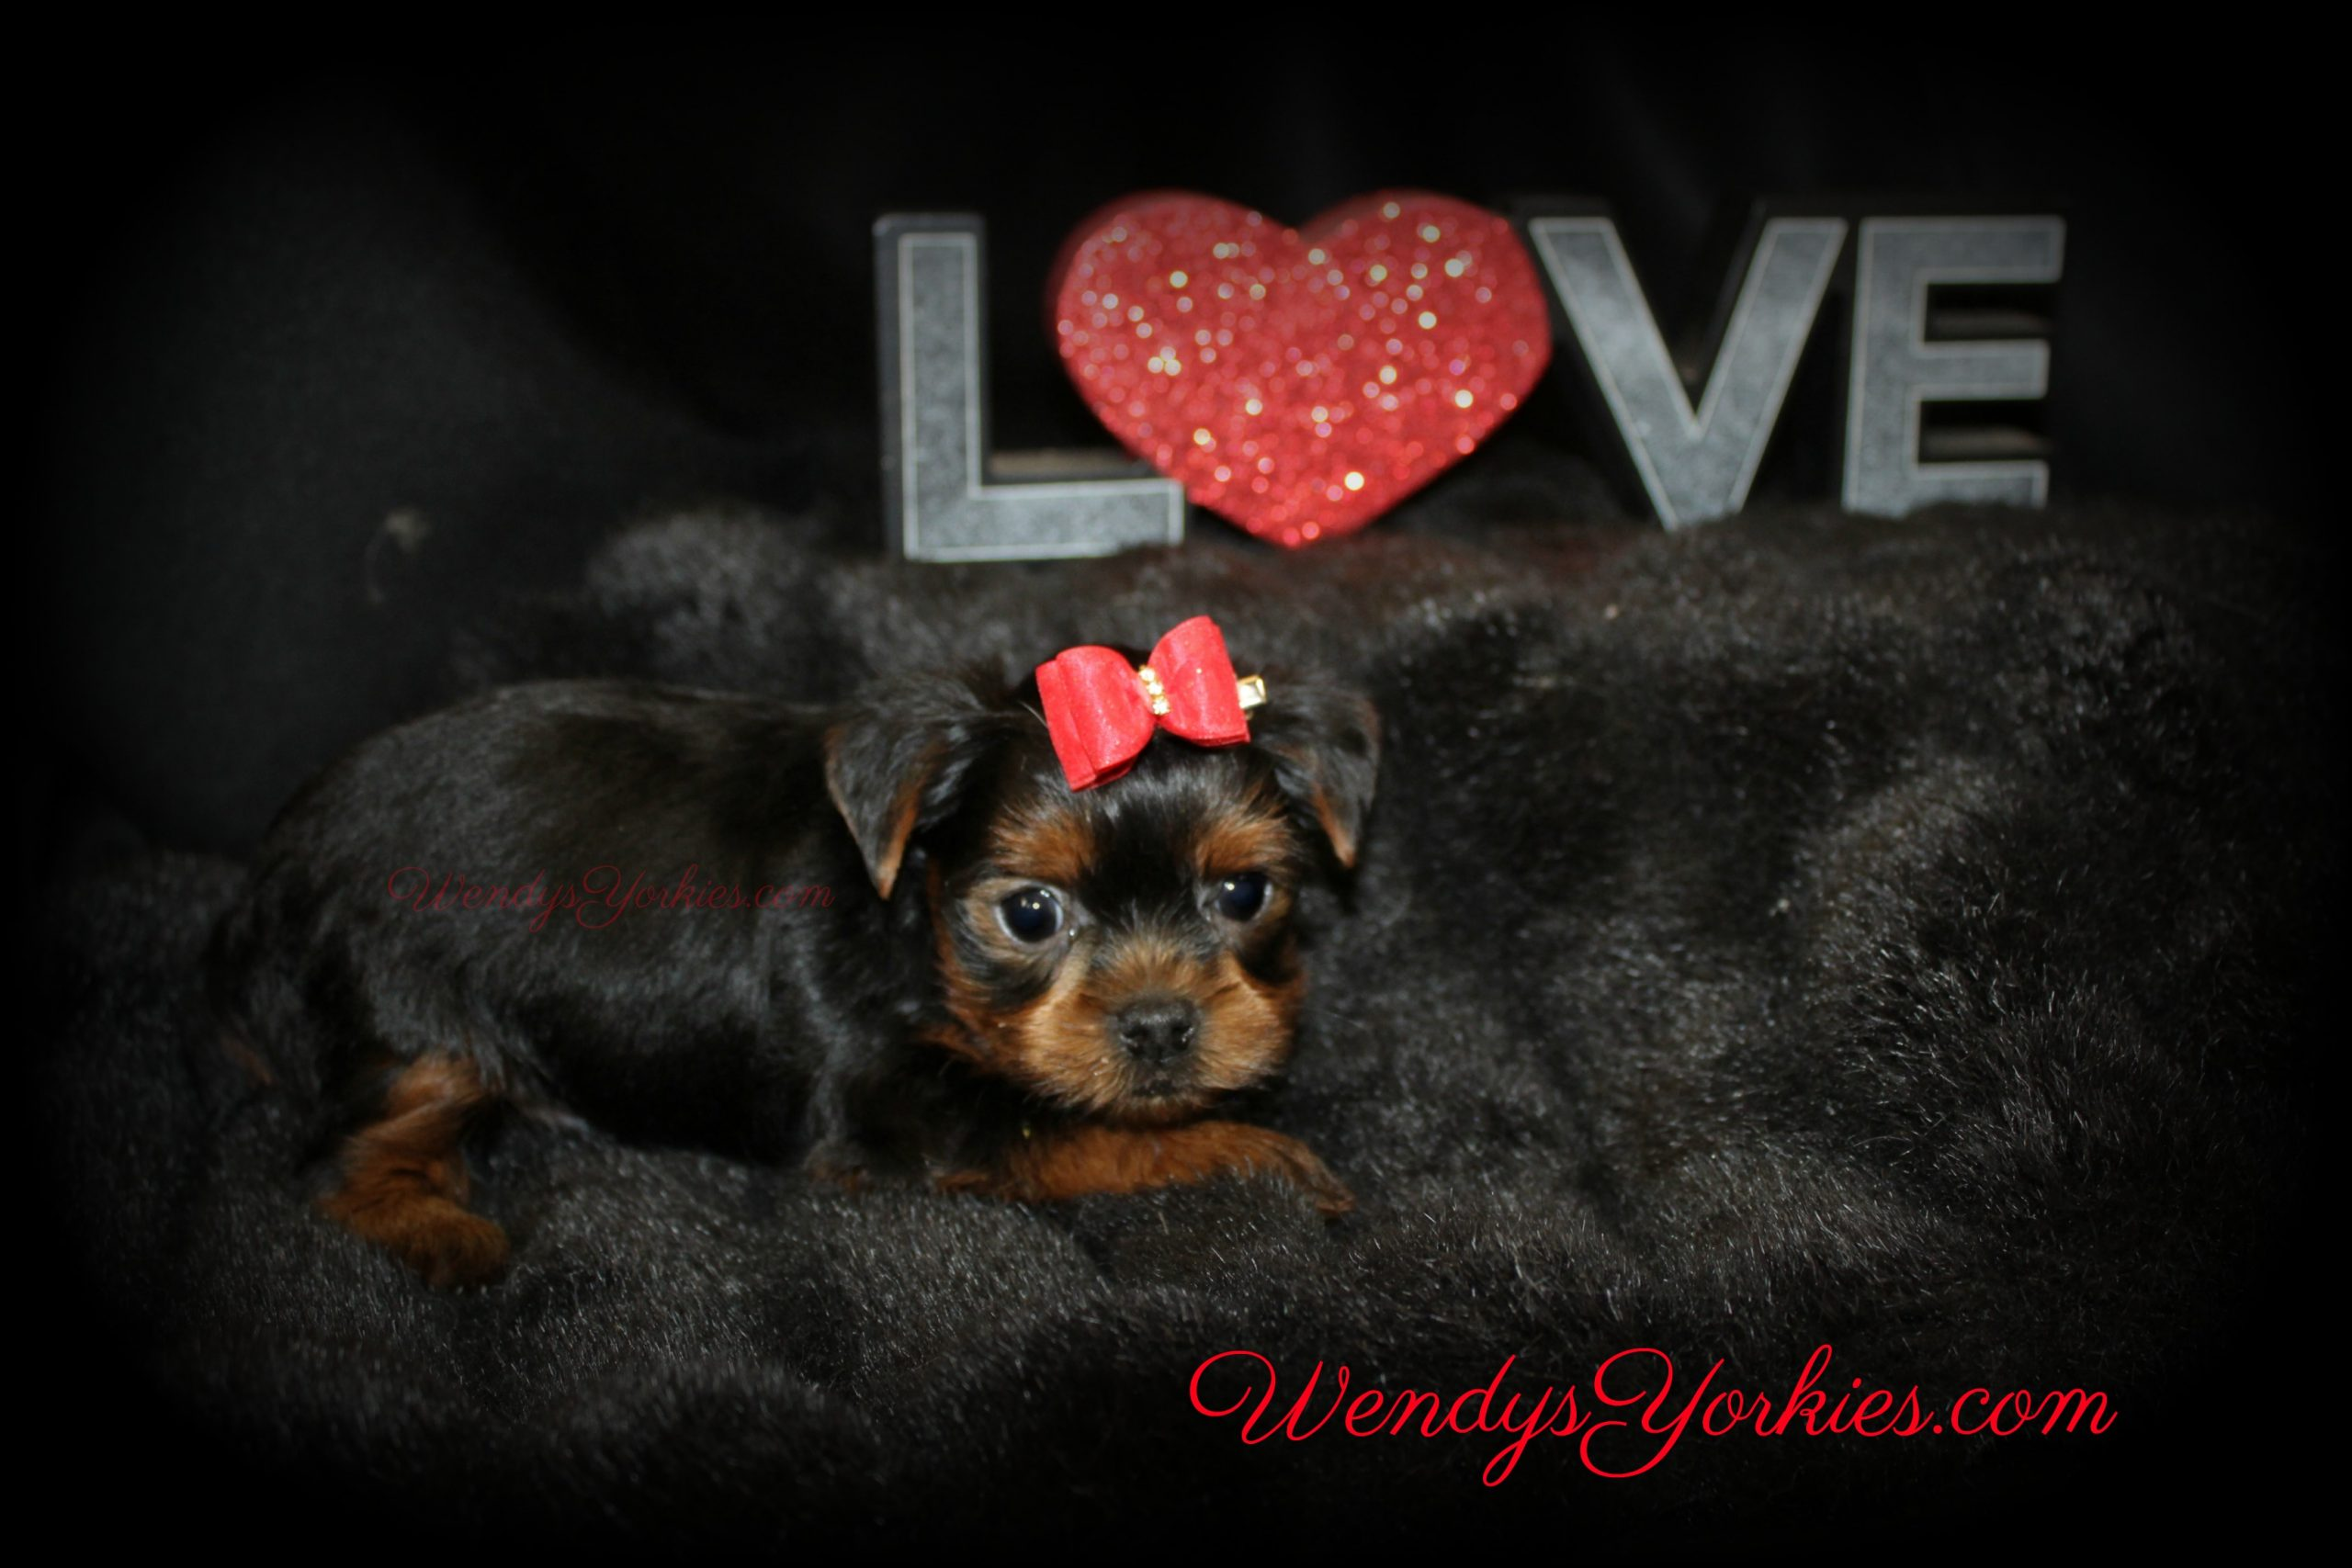 Love Yorkies, Yorkie puppy for sale, WendysYorkies.com